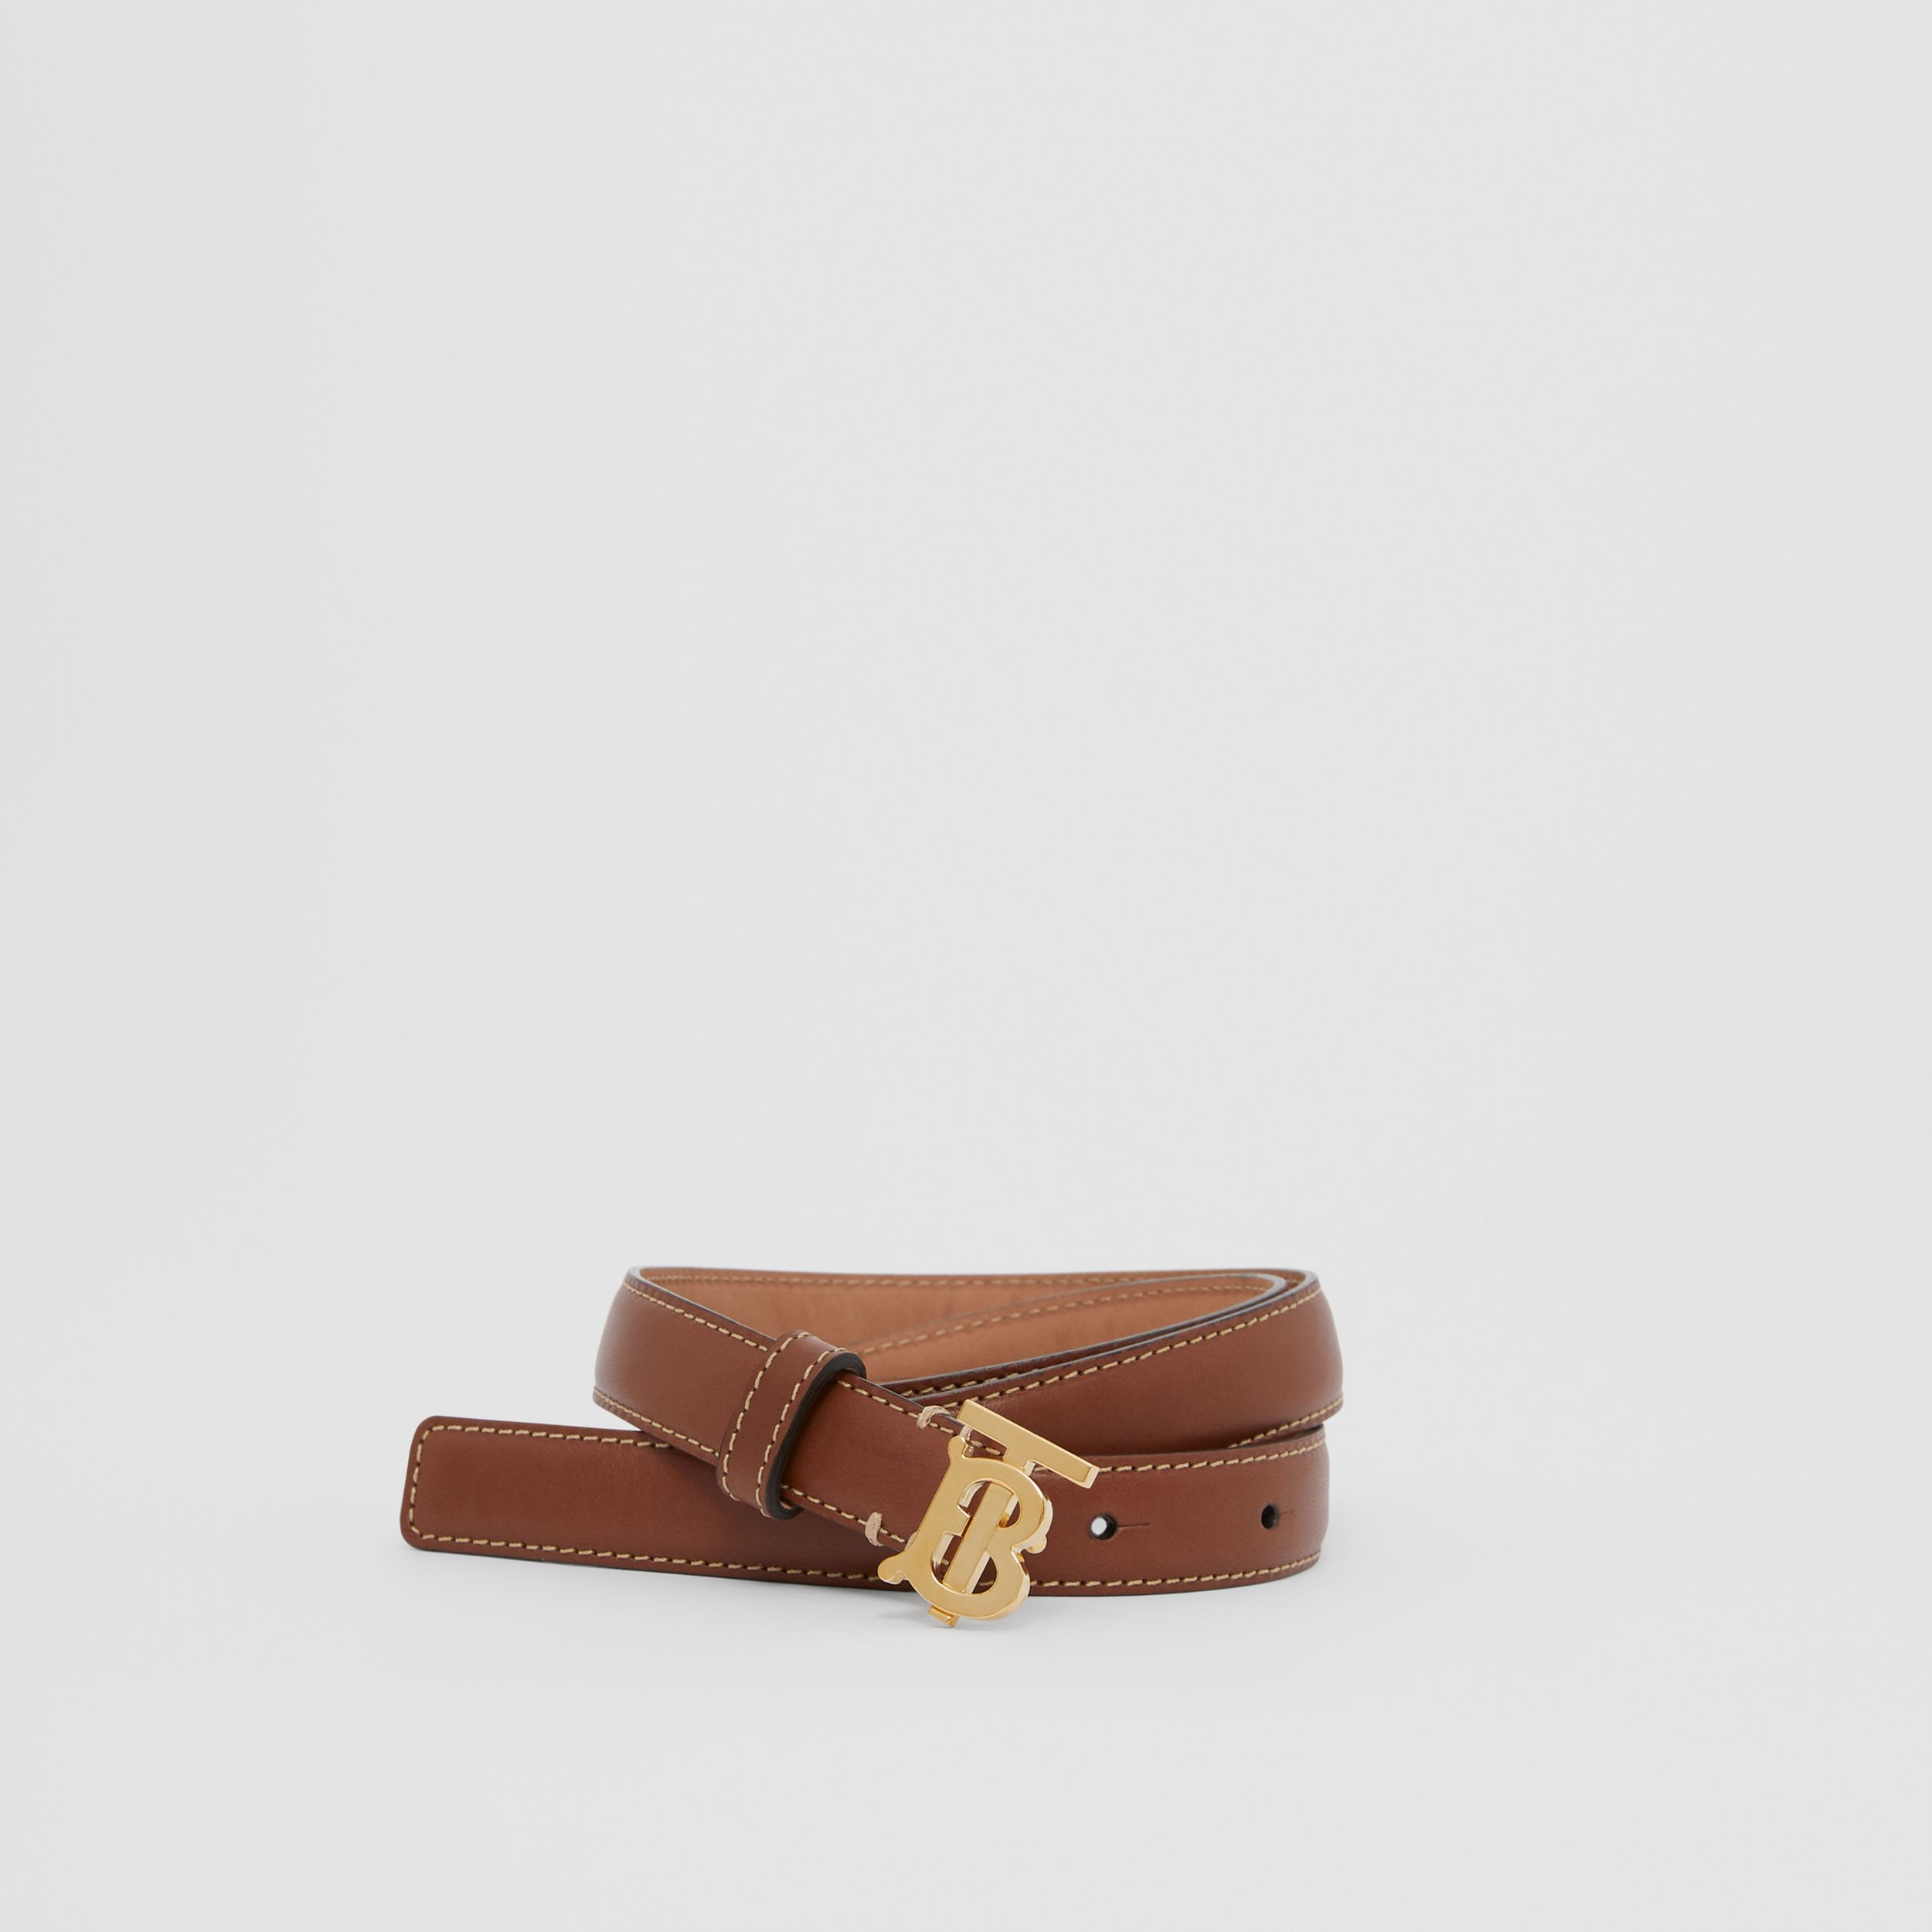 Monogram Motif Topstitched Leather Belt in Tan/light Gold - Women | Burberry - 1